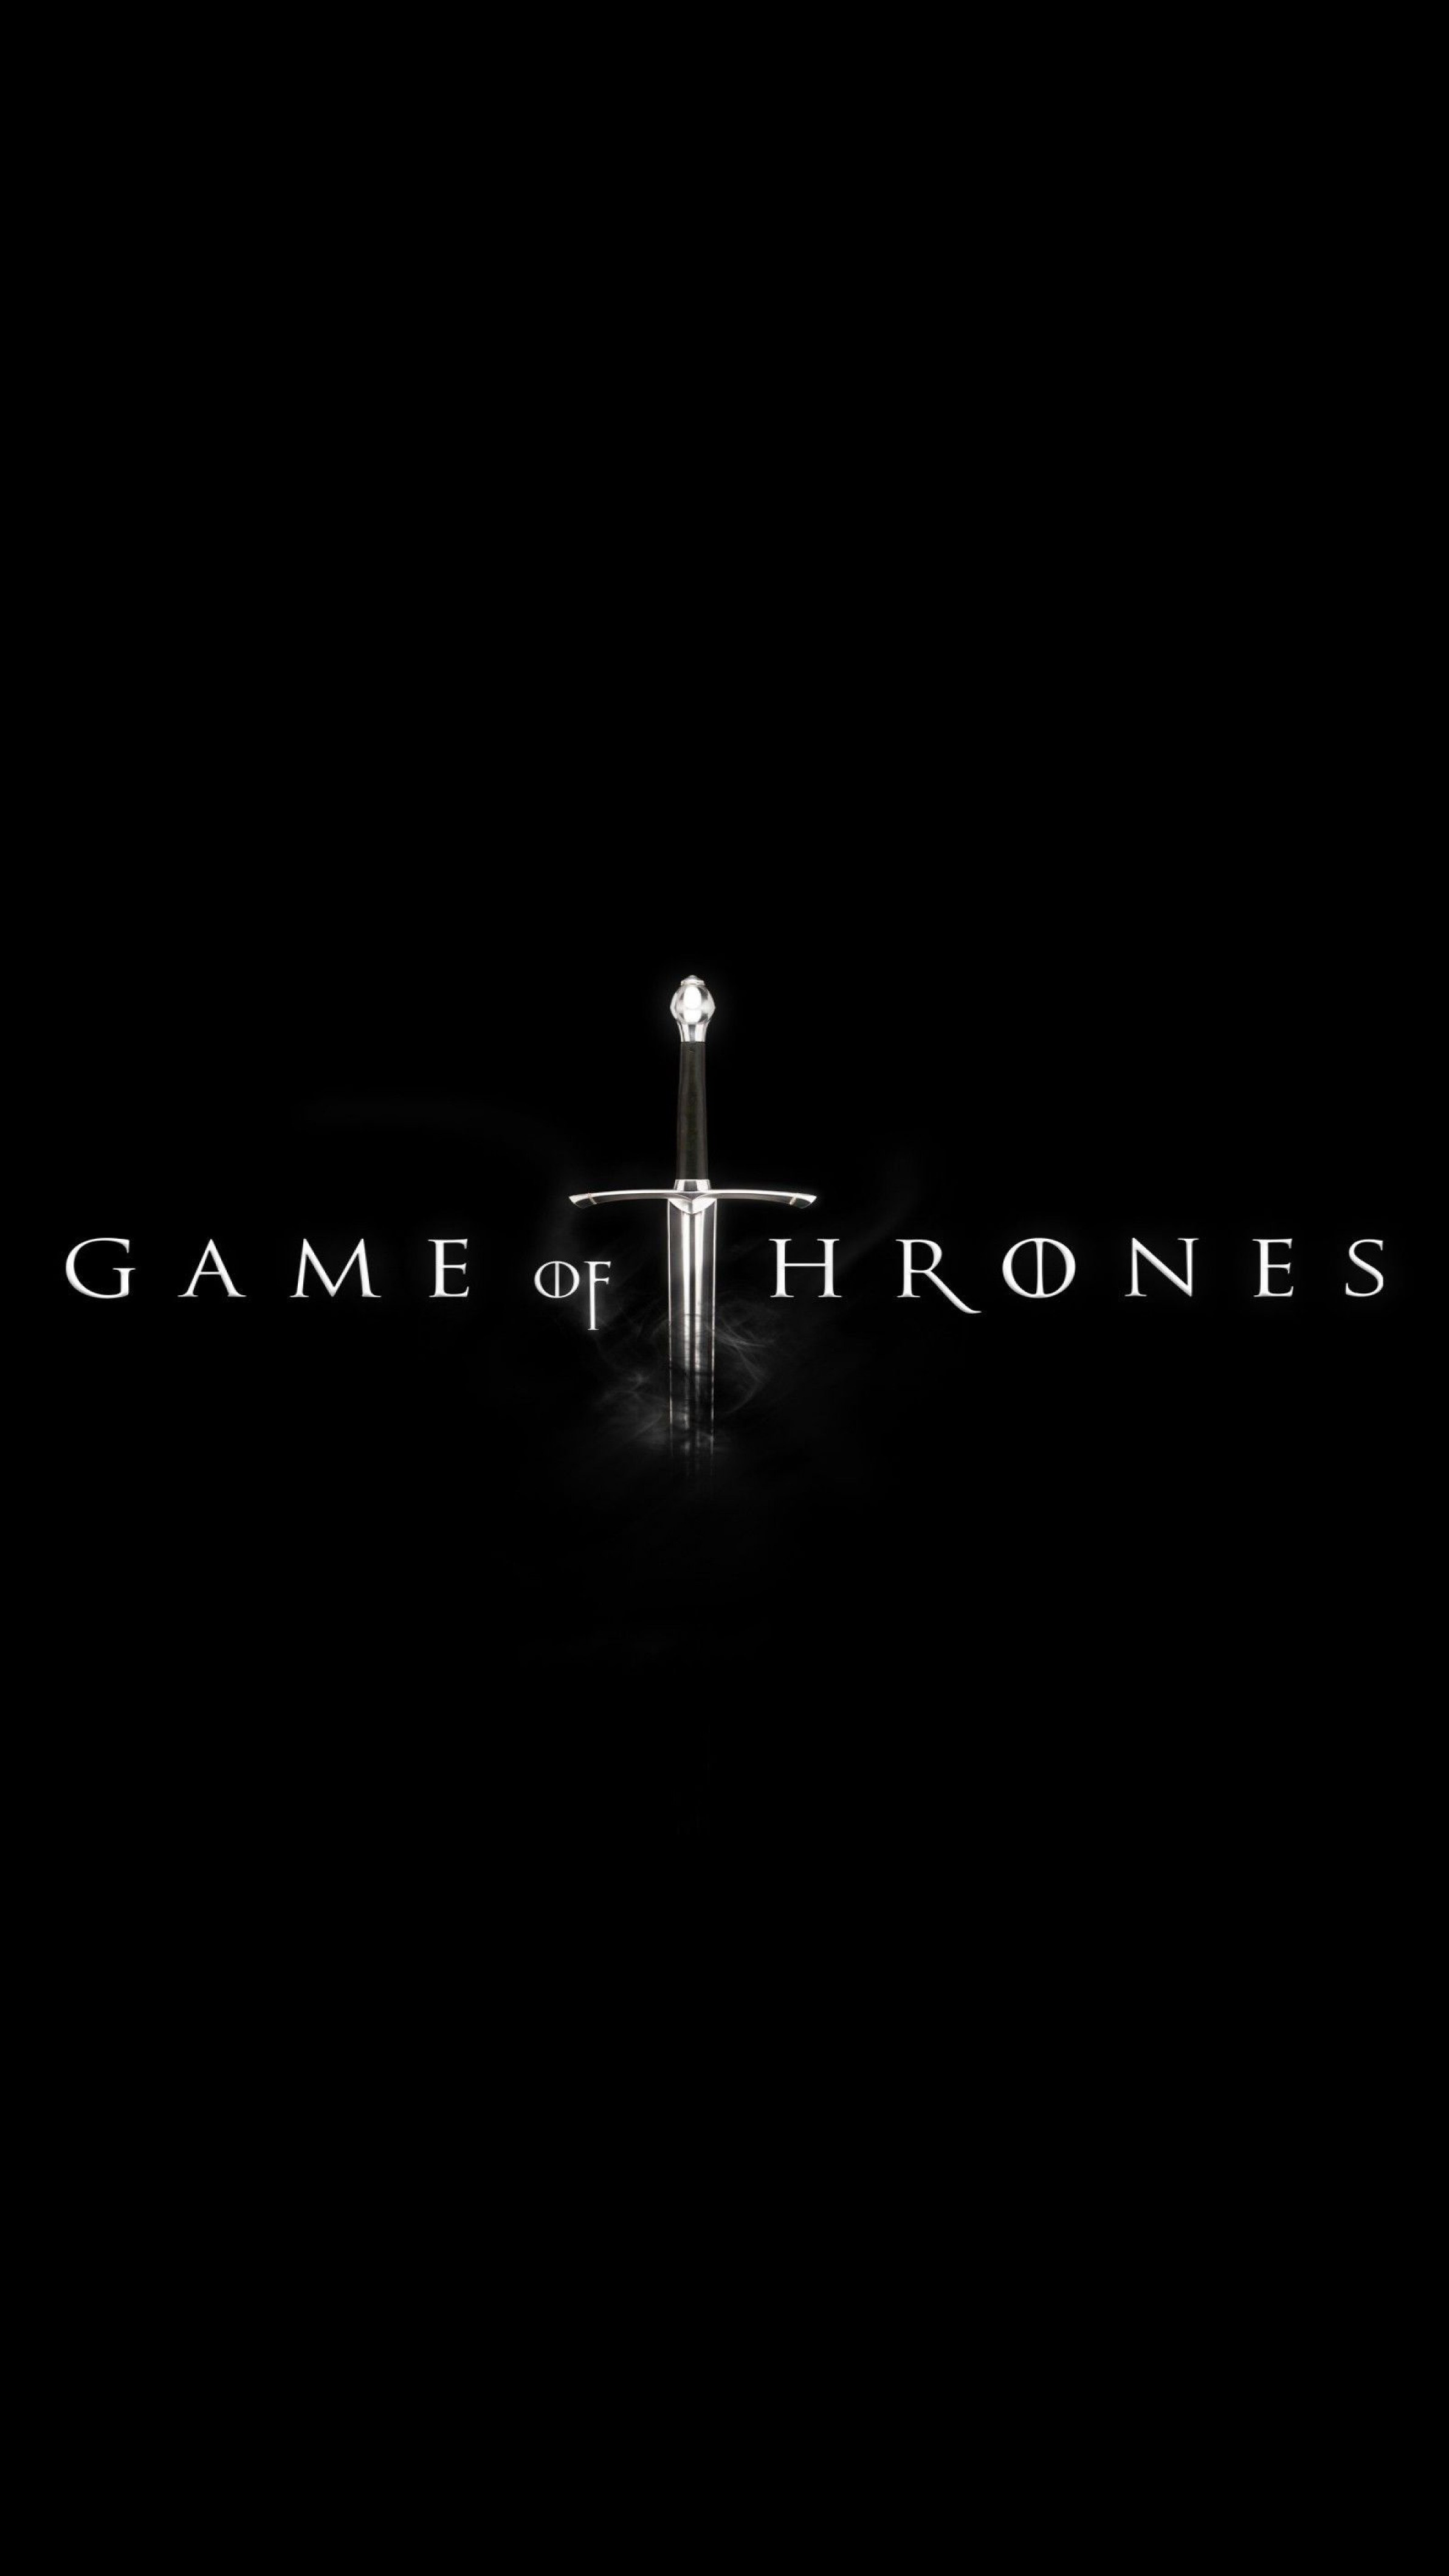 Game Of Thrones Live Wallpaper Android Game Fans Hub